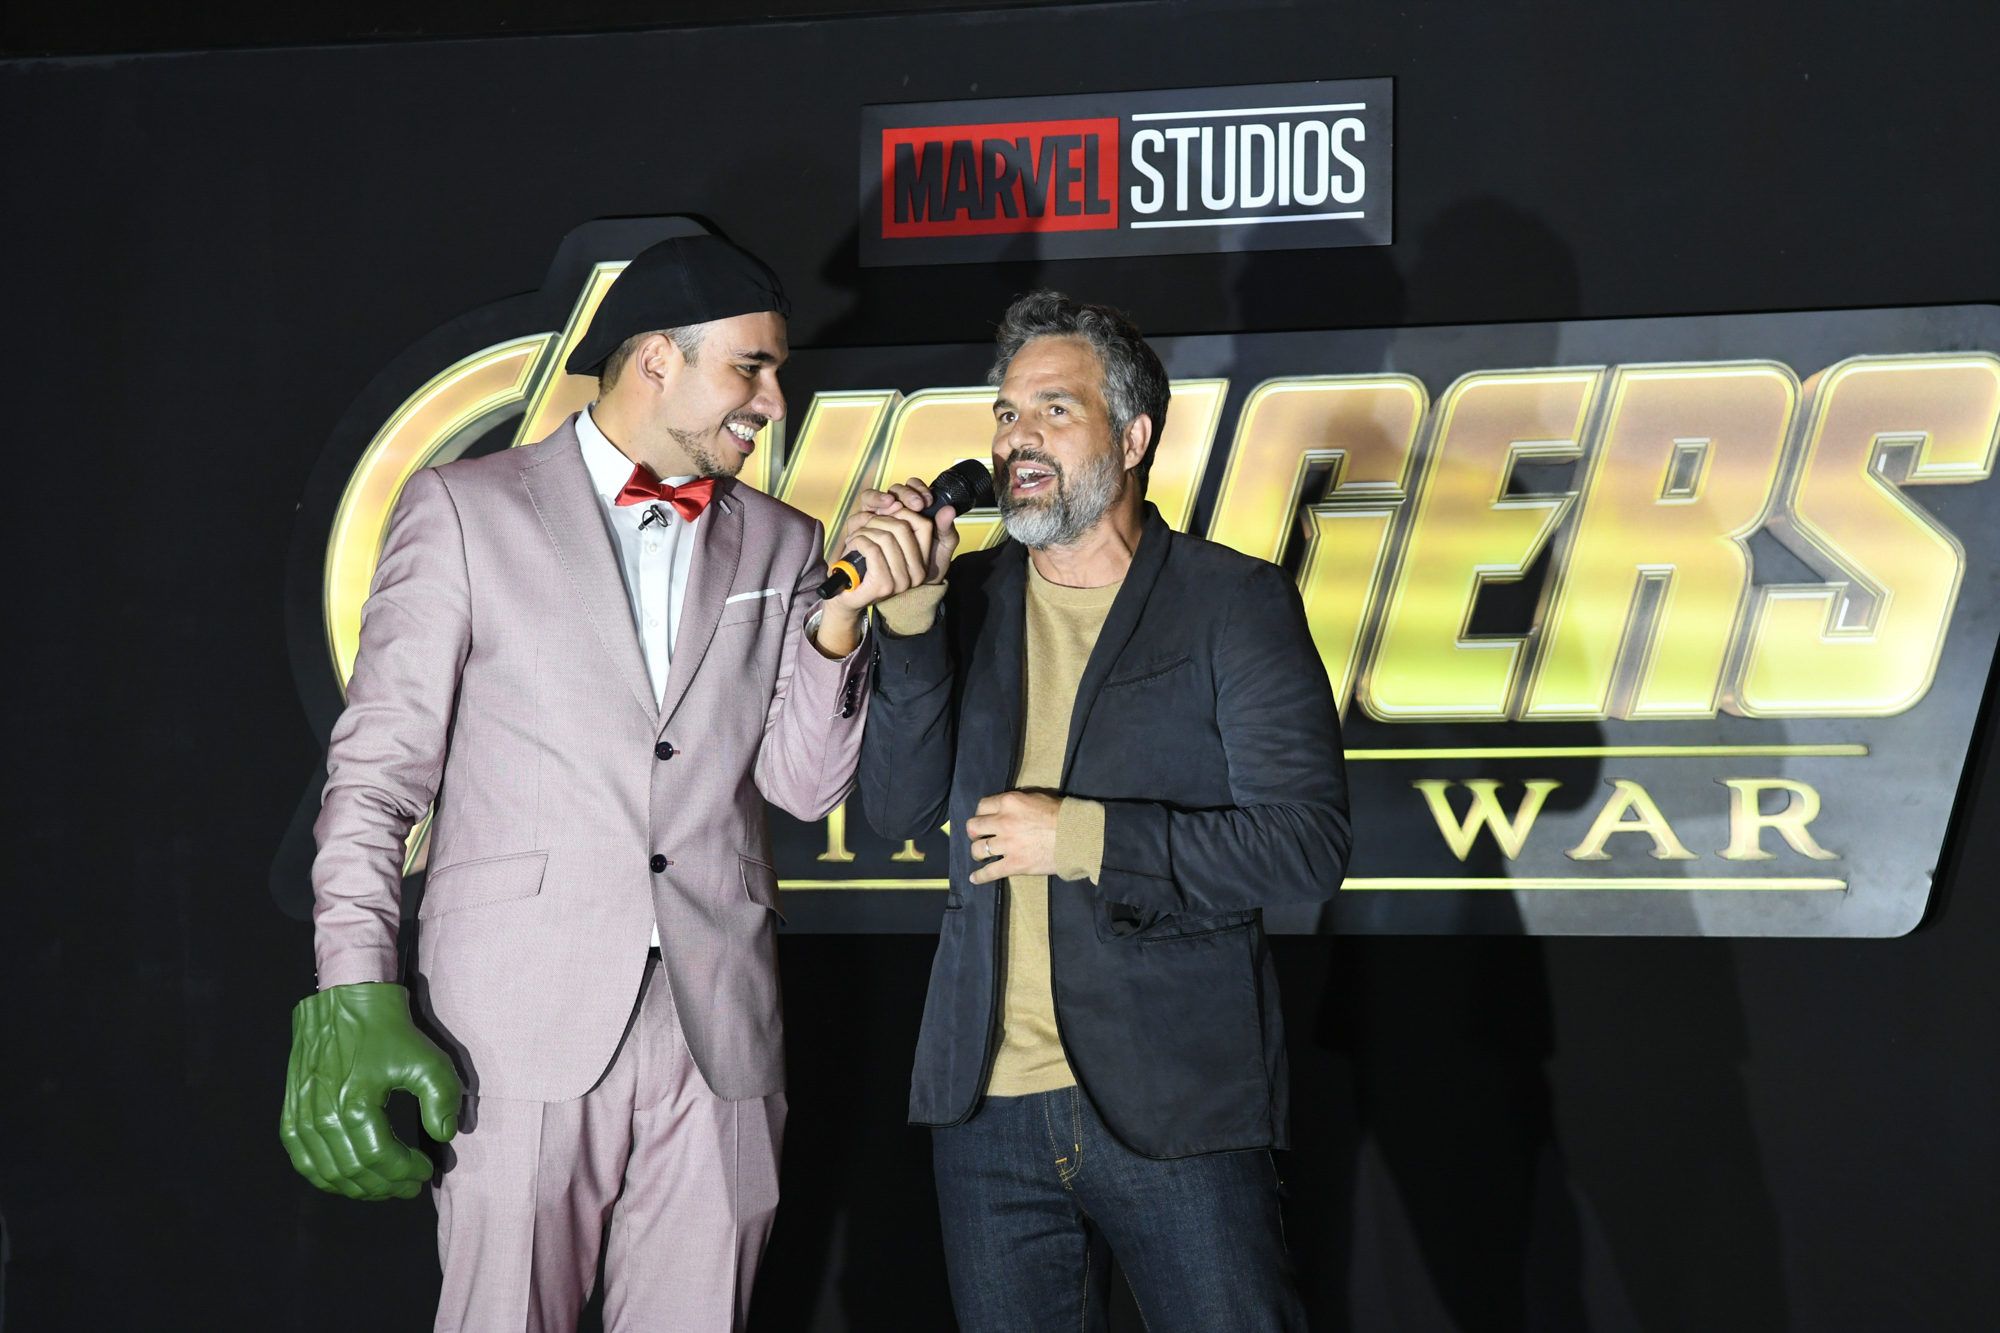 Red Carpet Fan Event Held in Mexico City for Avengers: Infinity War